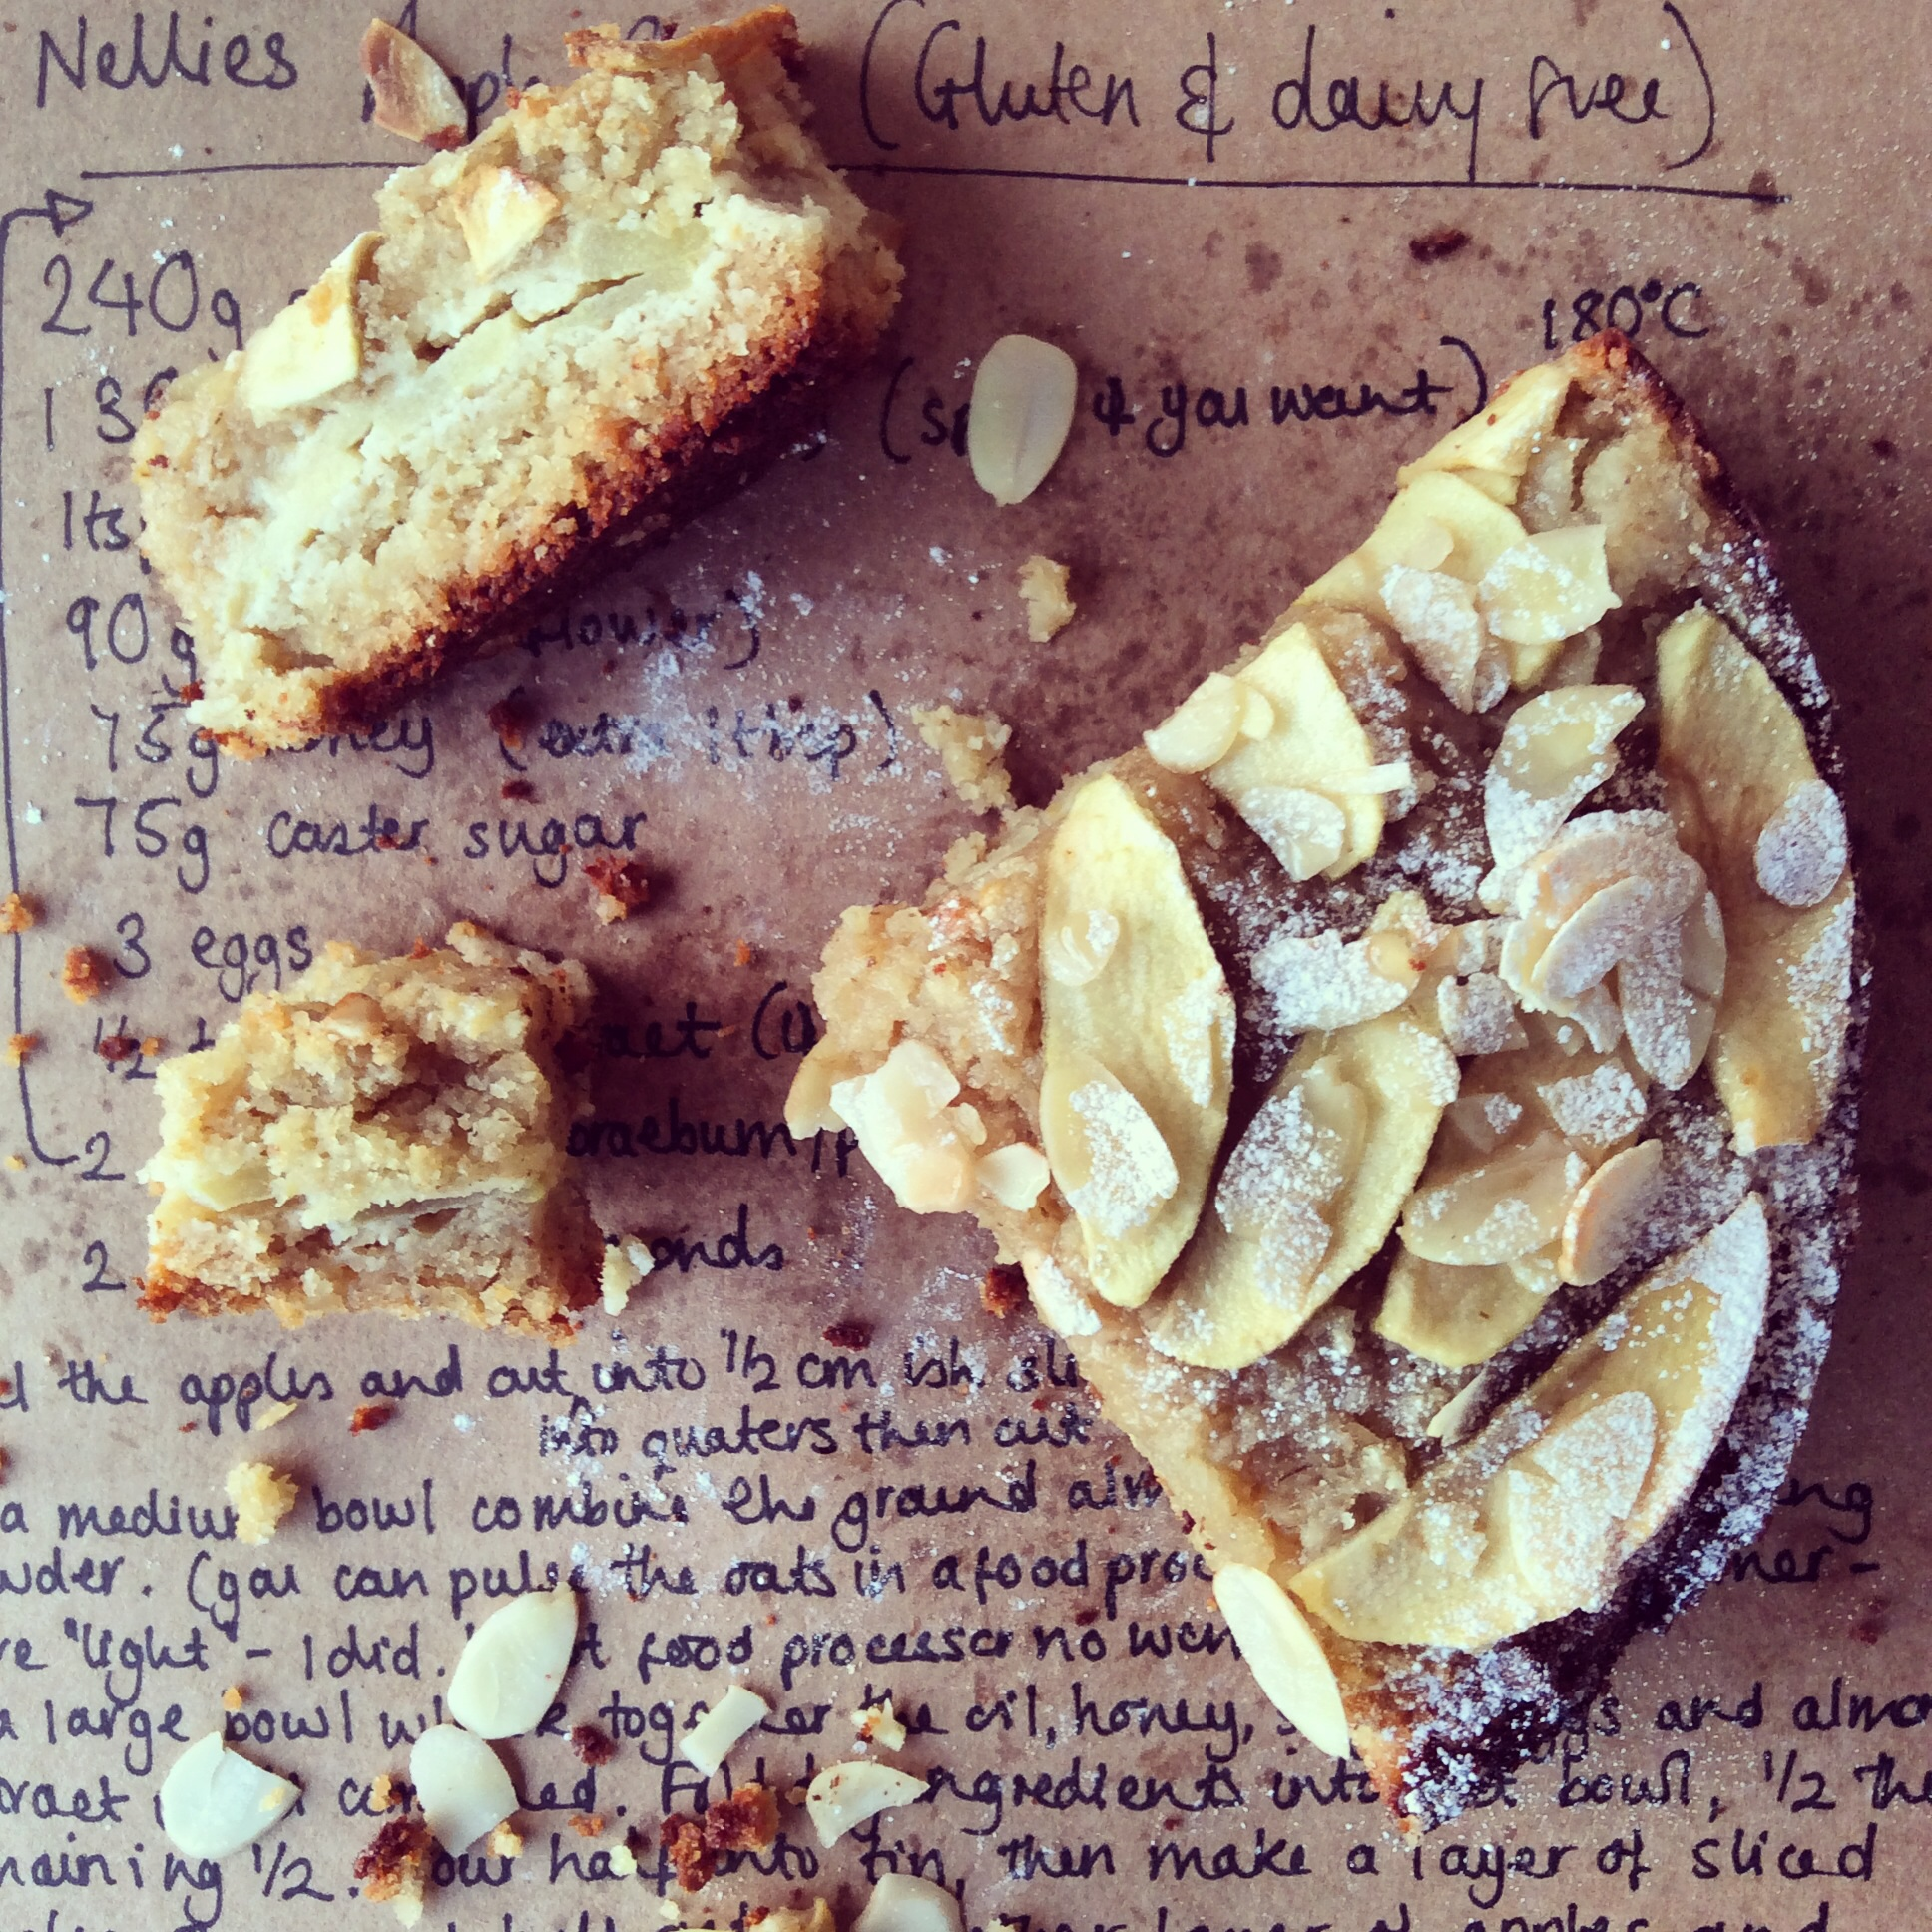 Nellies almond & apple cake